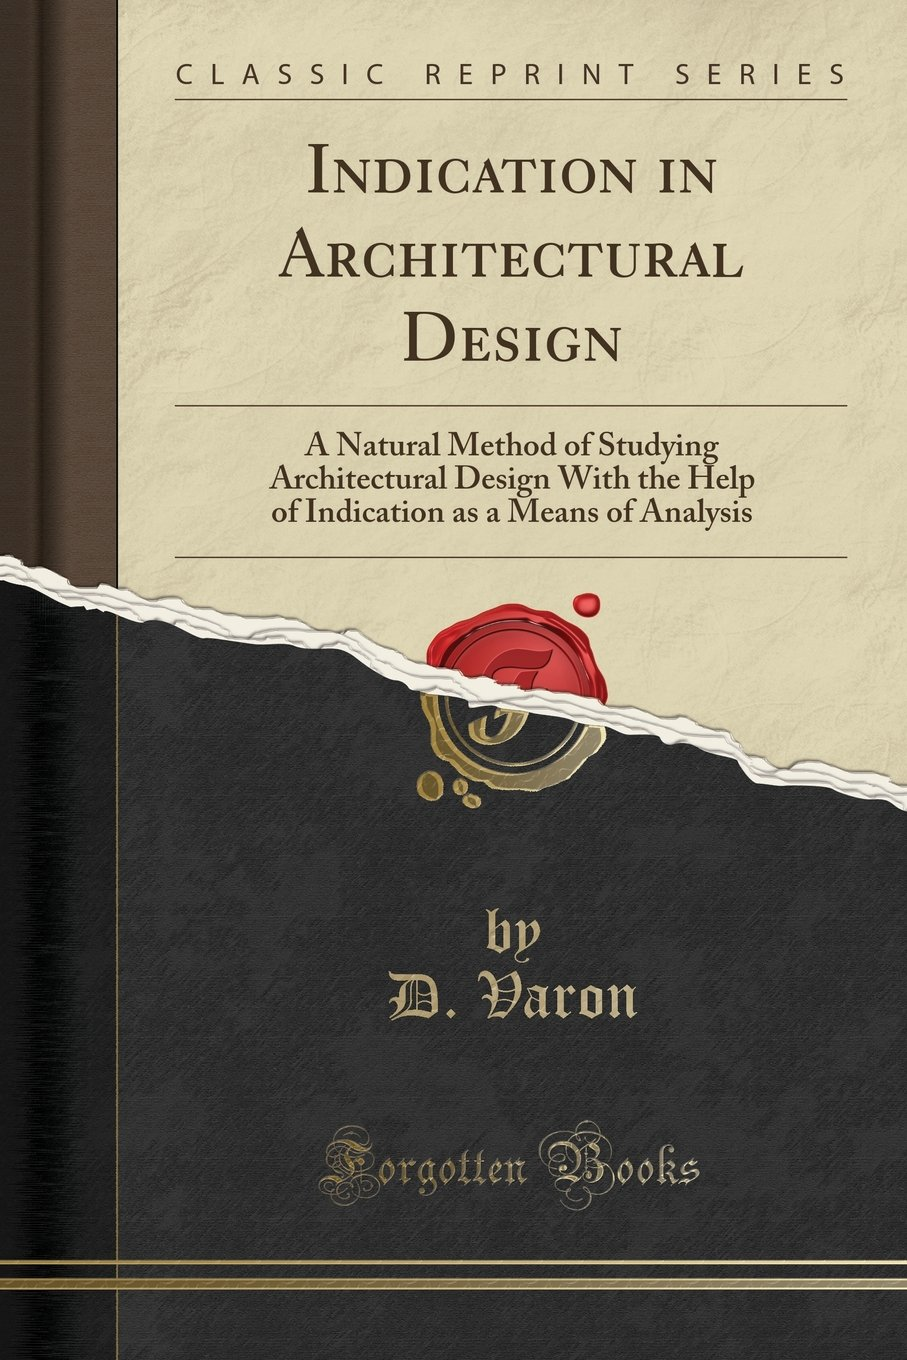 Indication in Architectural Design: A Natural Method of Studying Architectural Design With the Help of Indication as a Means of Analysis (Classic Reprint) PDF